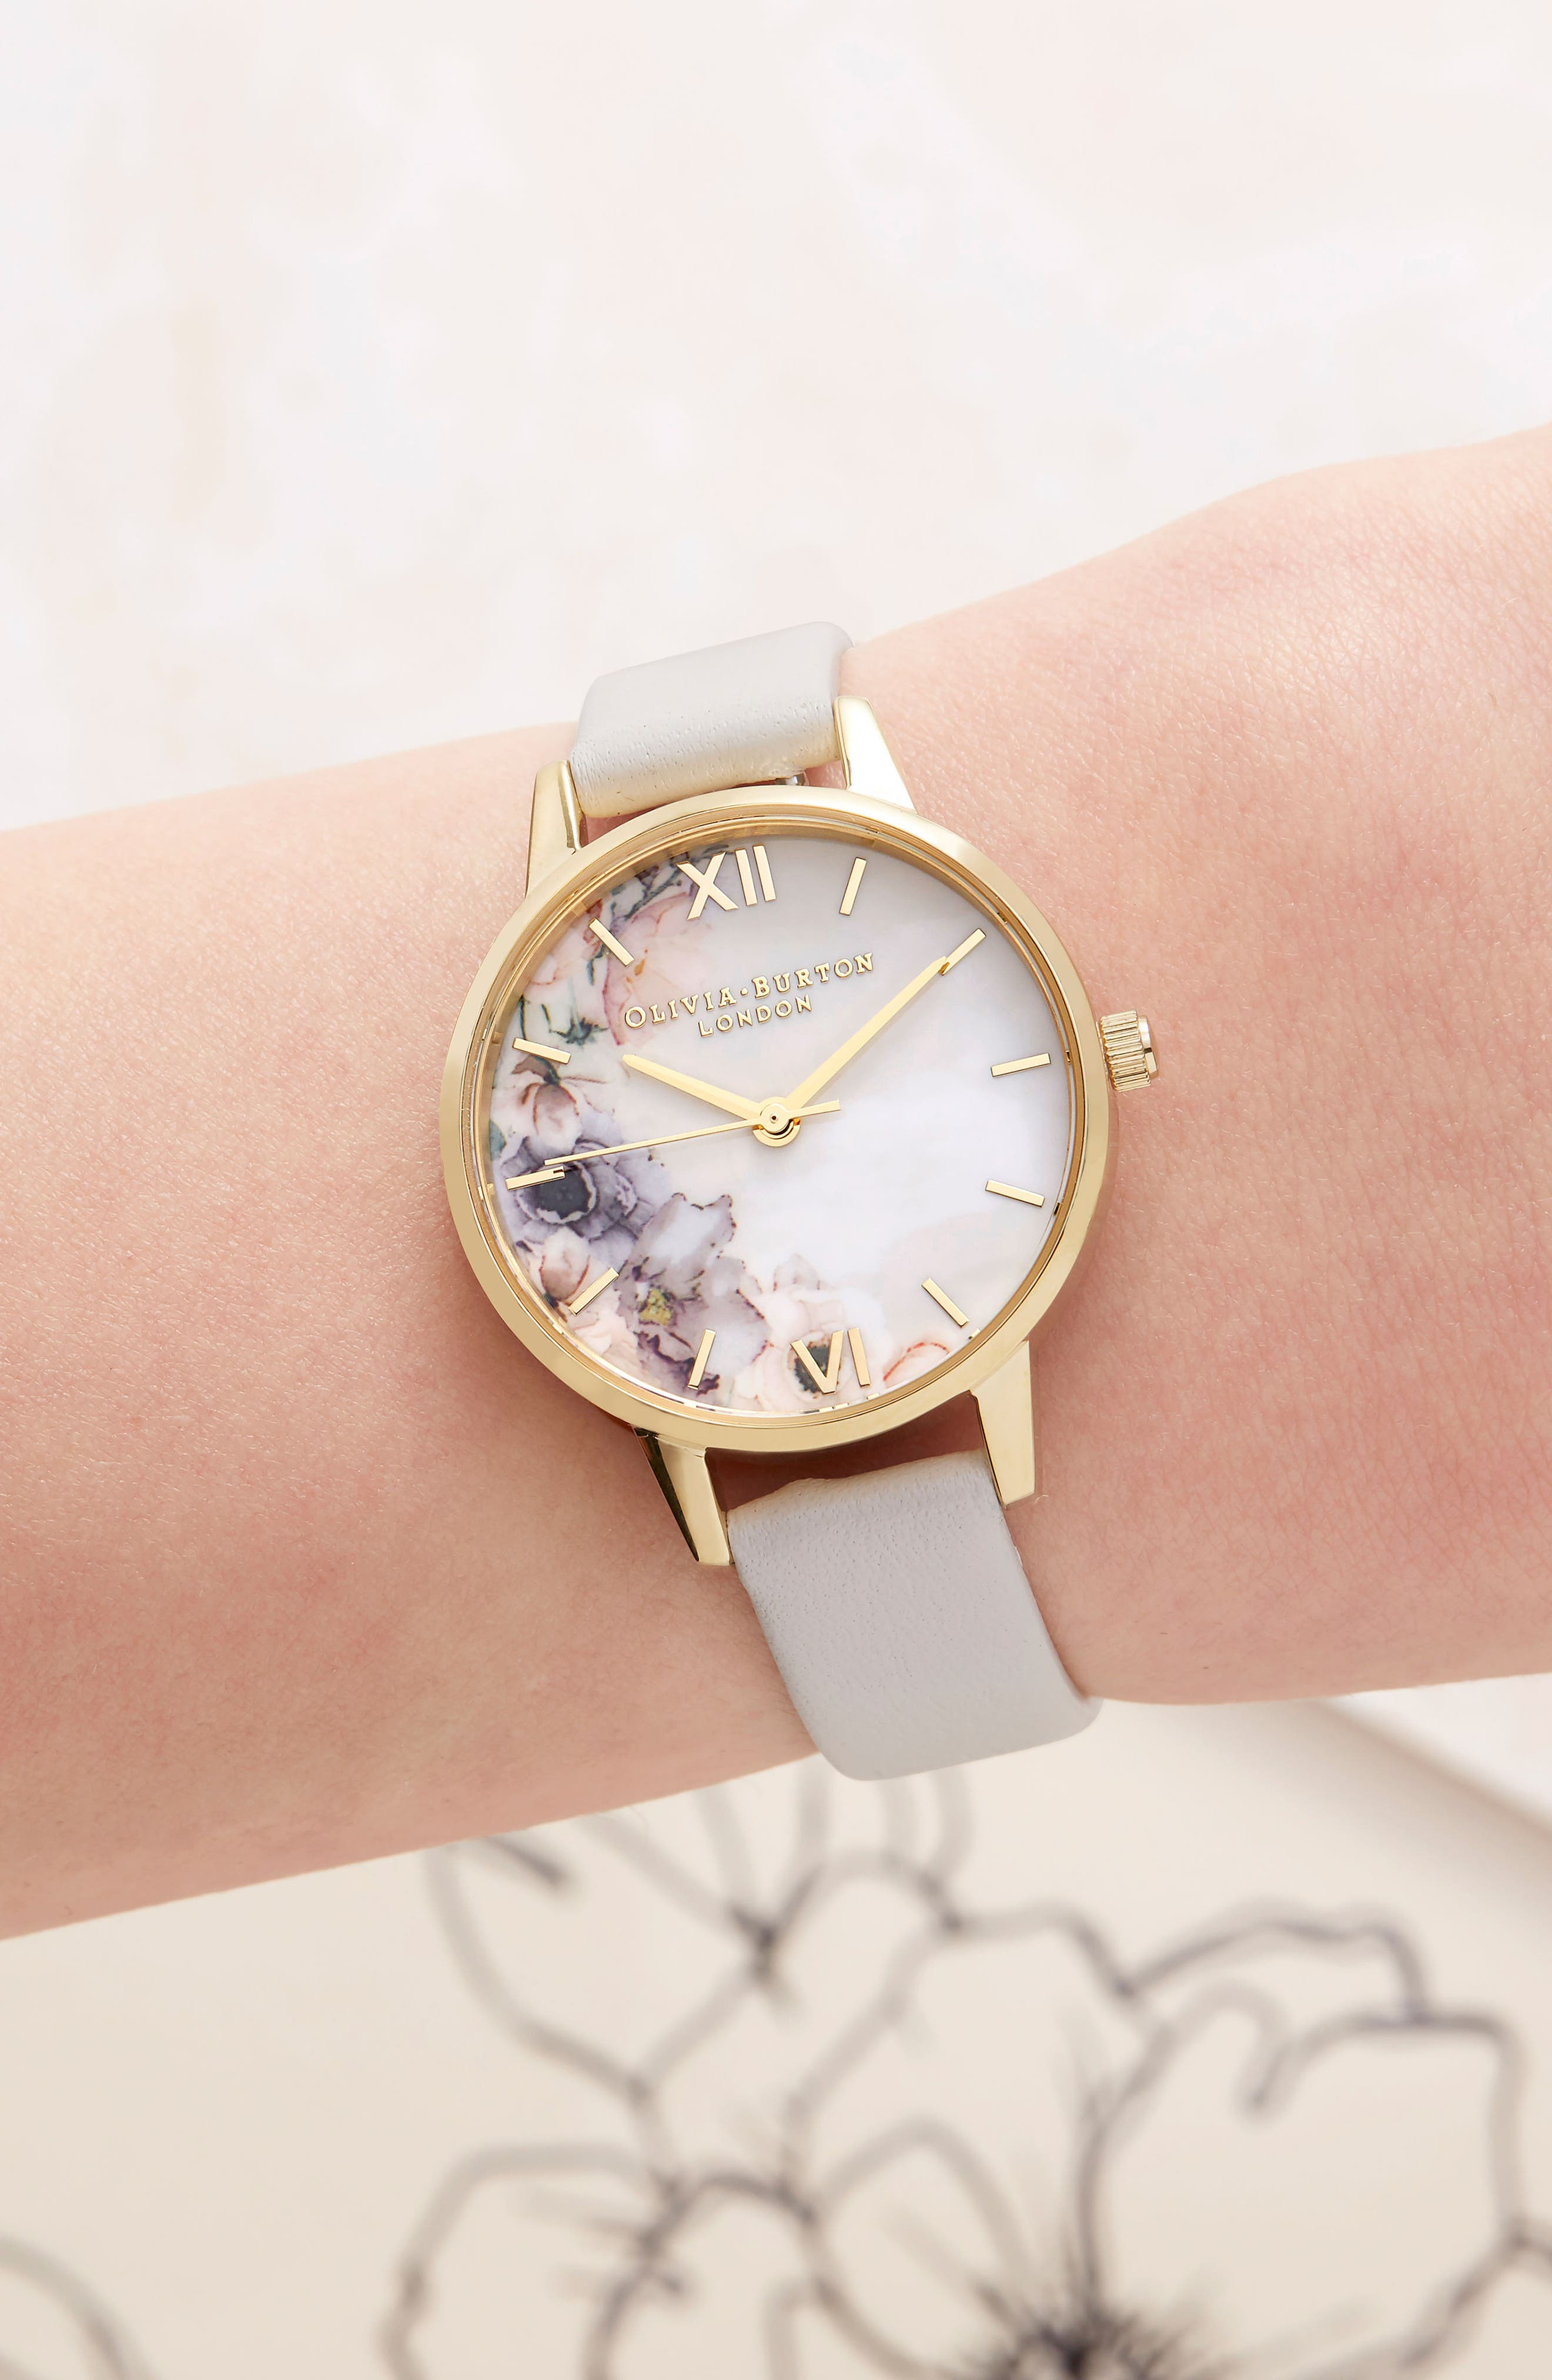 Watercolor Floral Leather Strap Watch, 30mm,                             Alternate thumbnail 6, color,                             BLUSH/ WHITE FLORAL/ GOLD